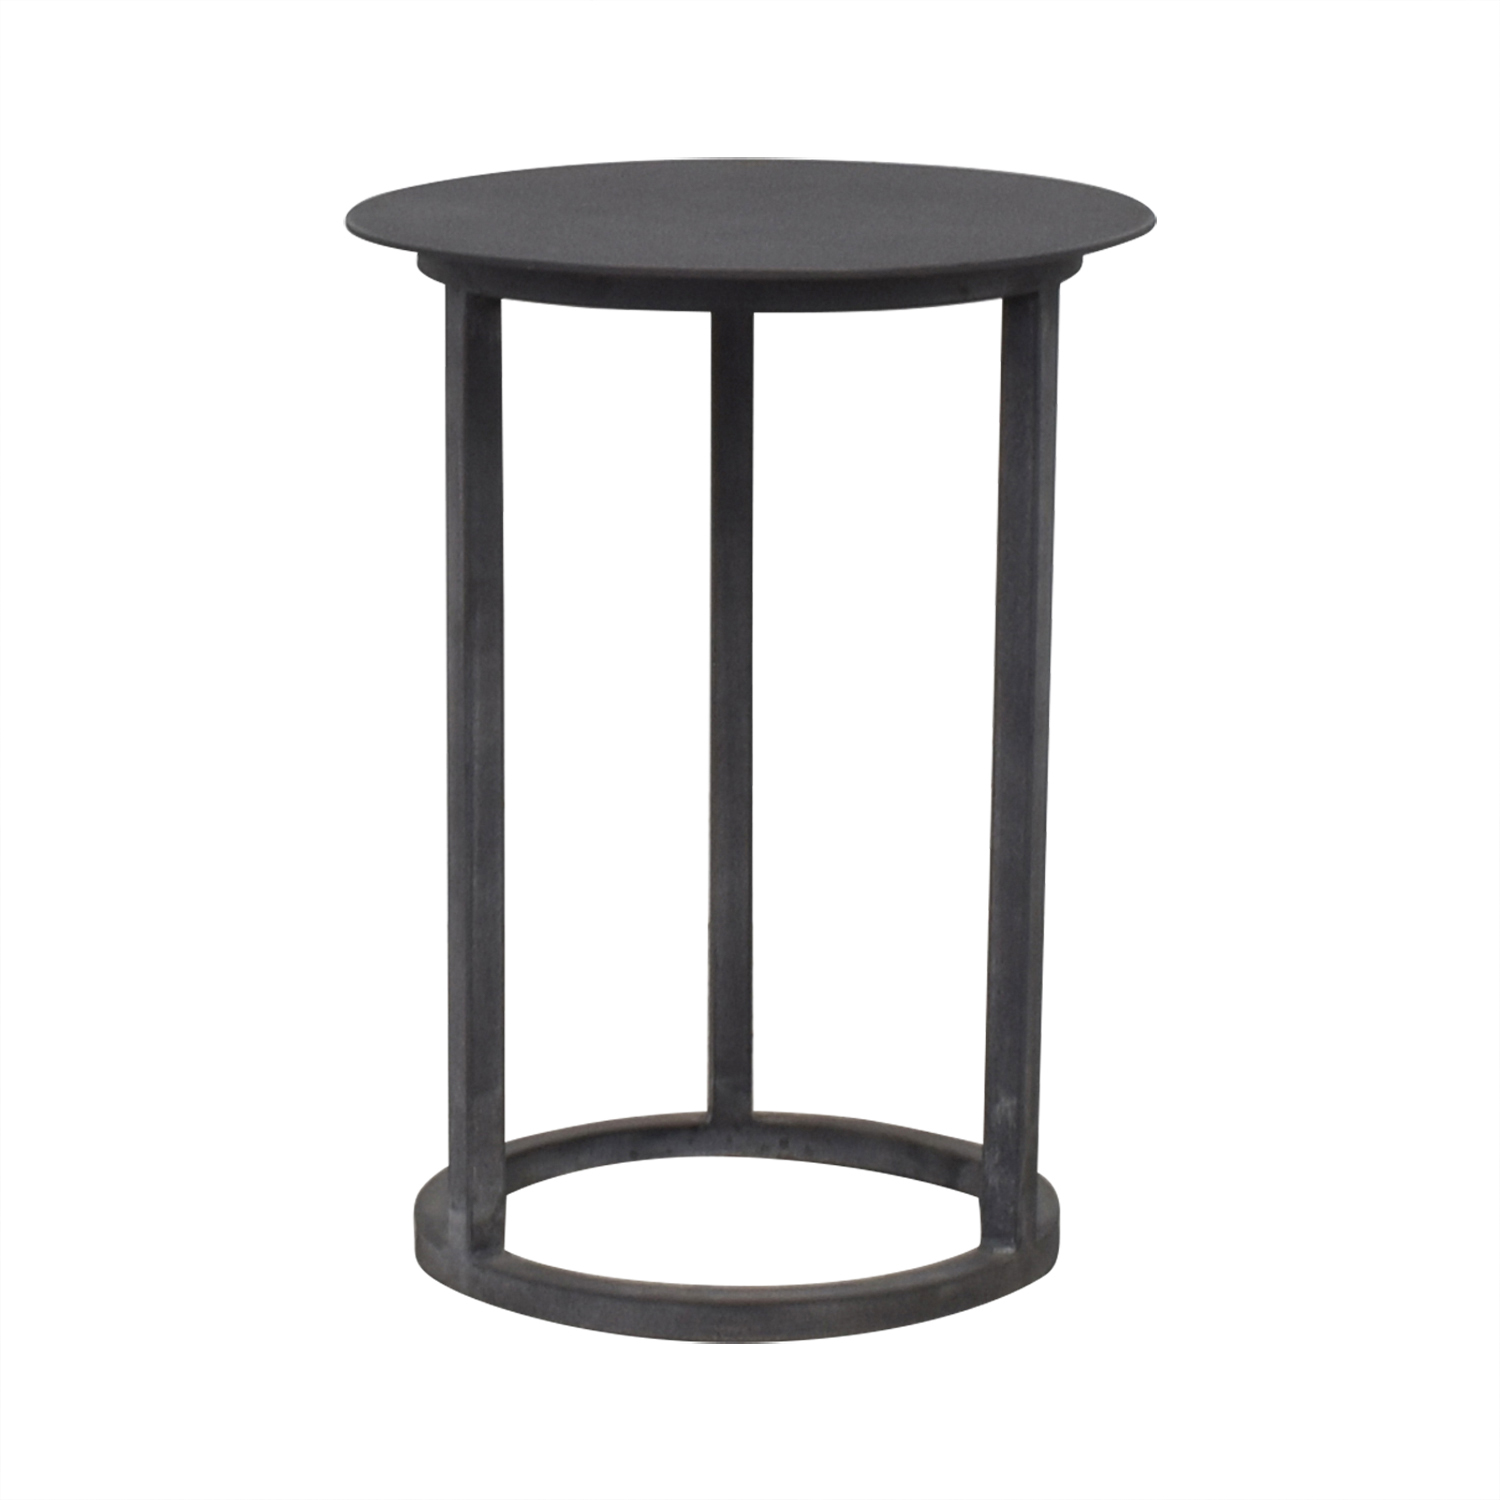 Restoration Hardware Restoration Hardware Mercer Round Side Table Tables